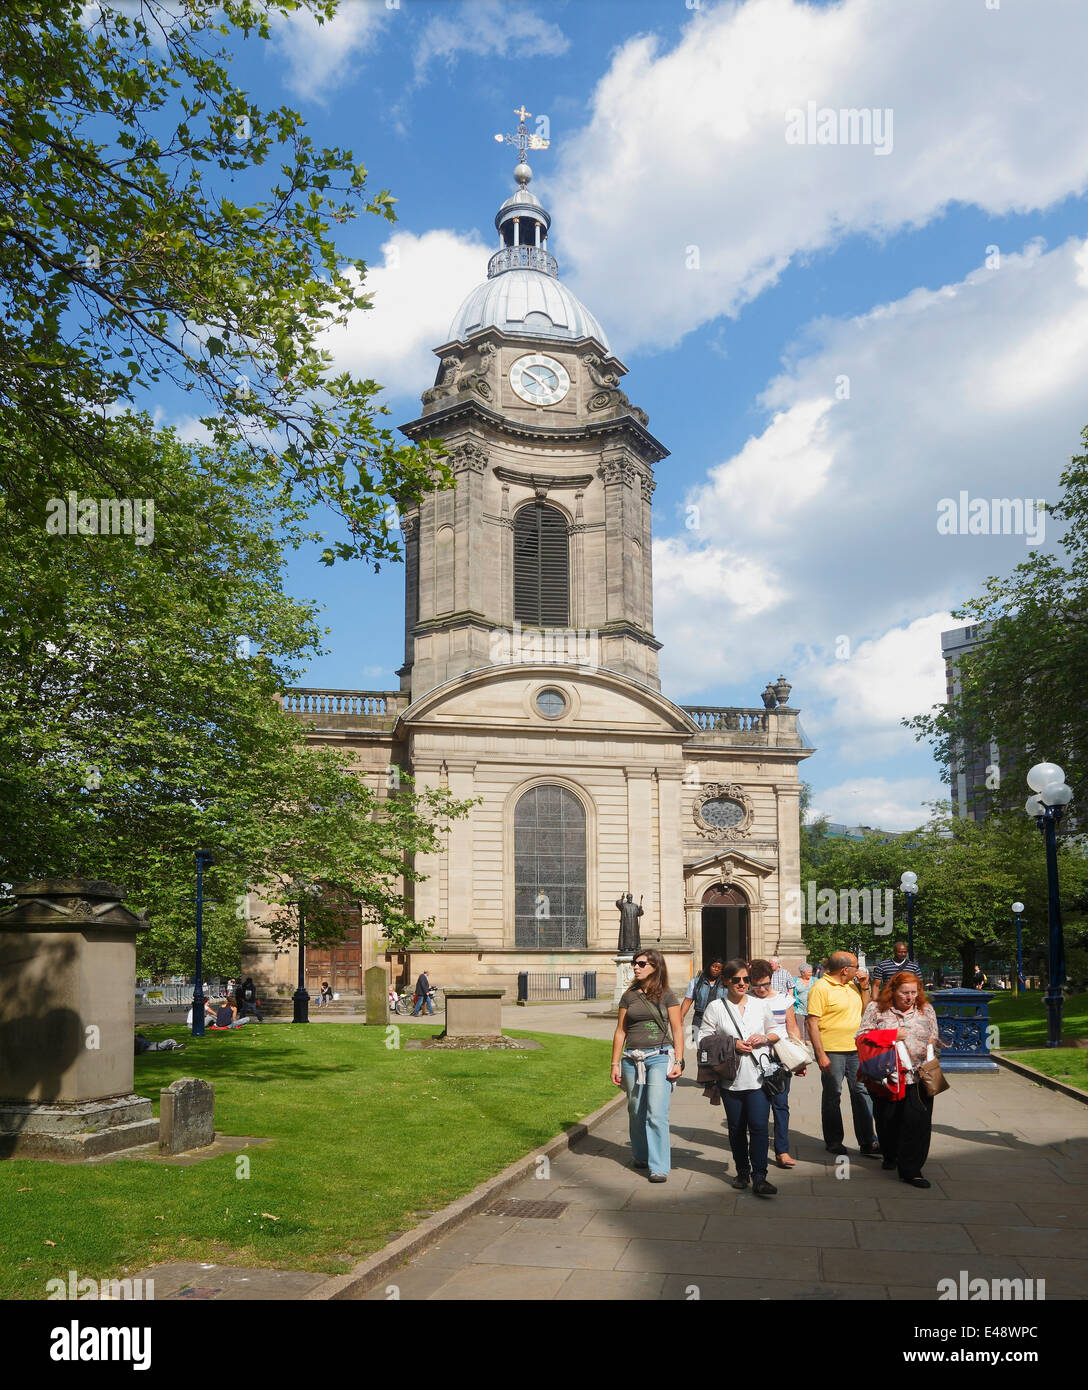 St. Philip's Cathedral in central Birmingham - Stock Image